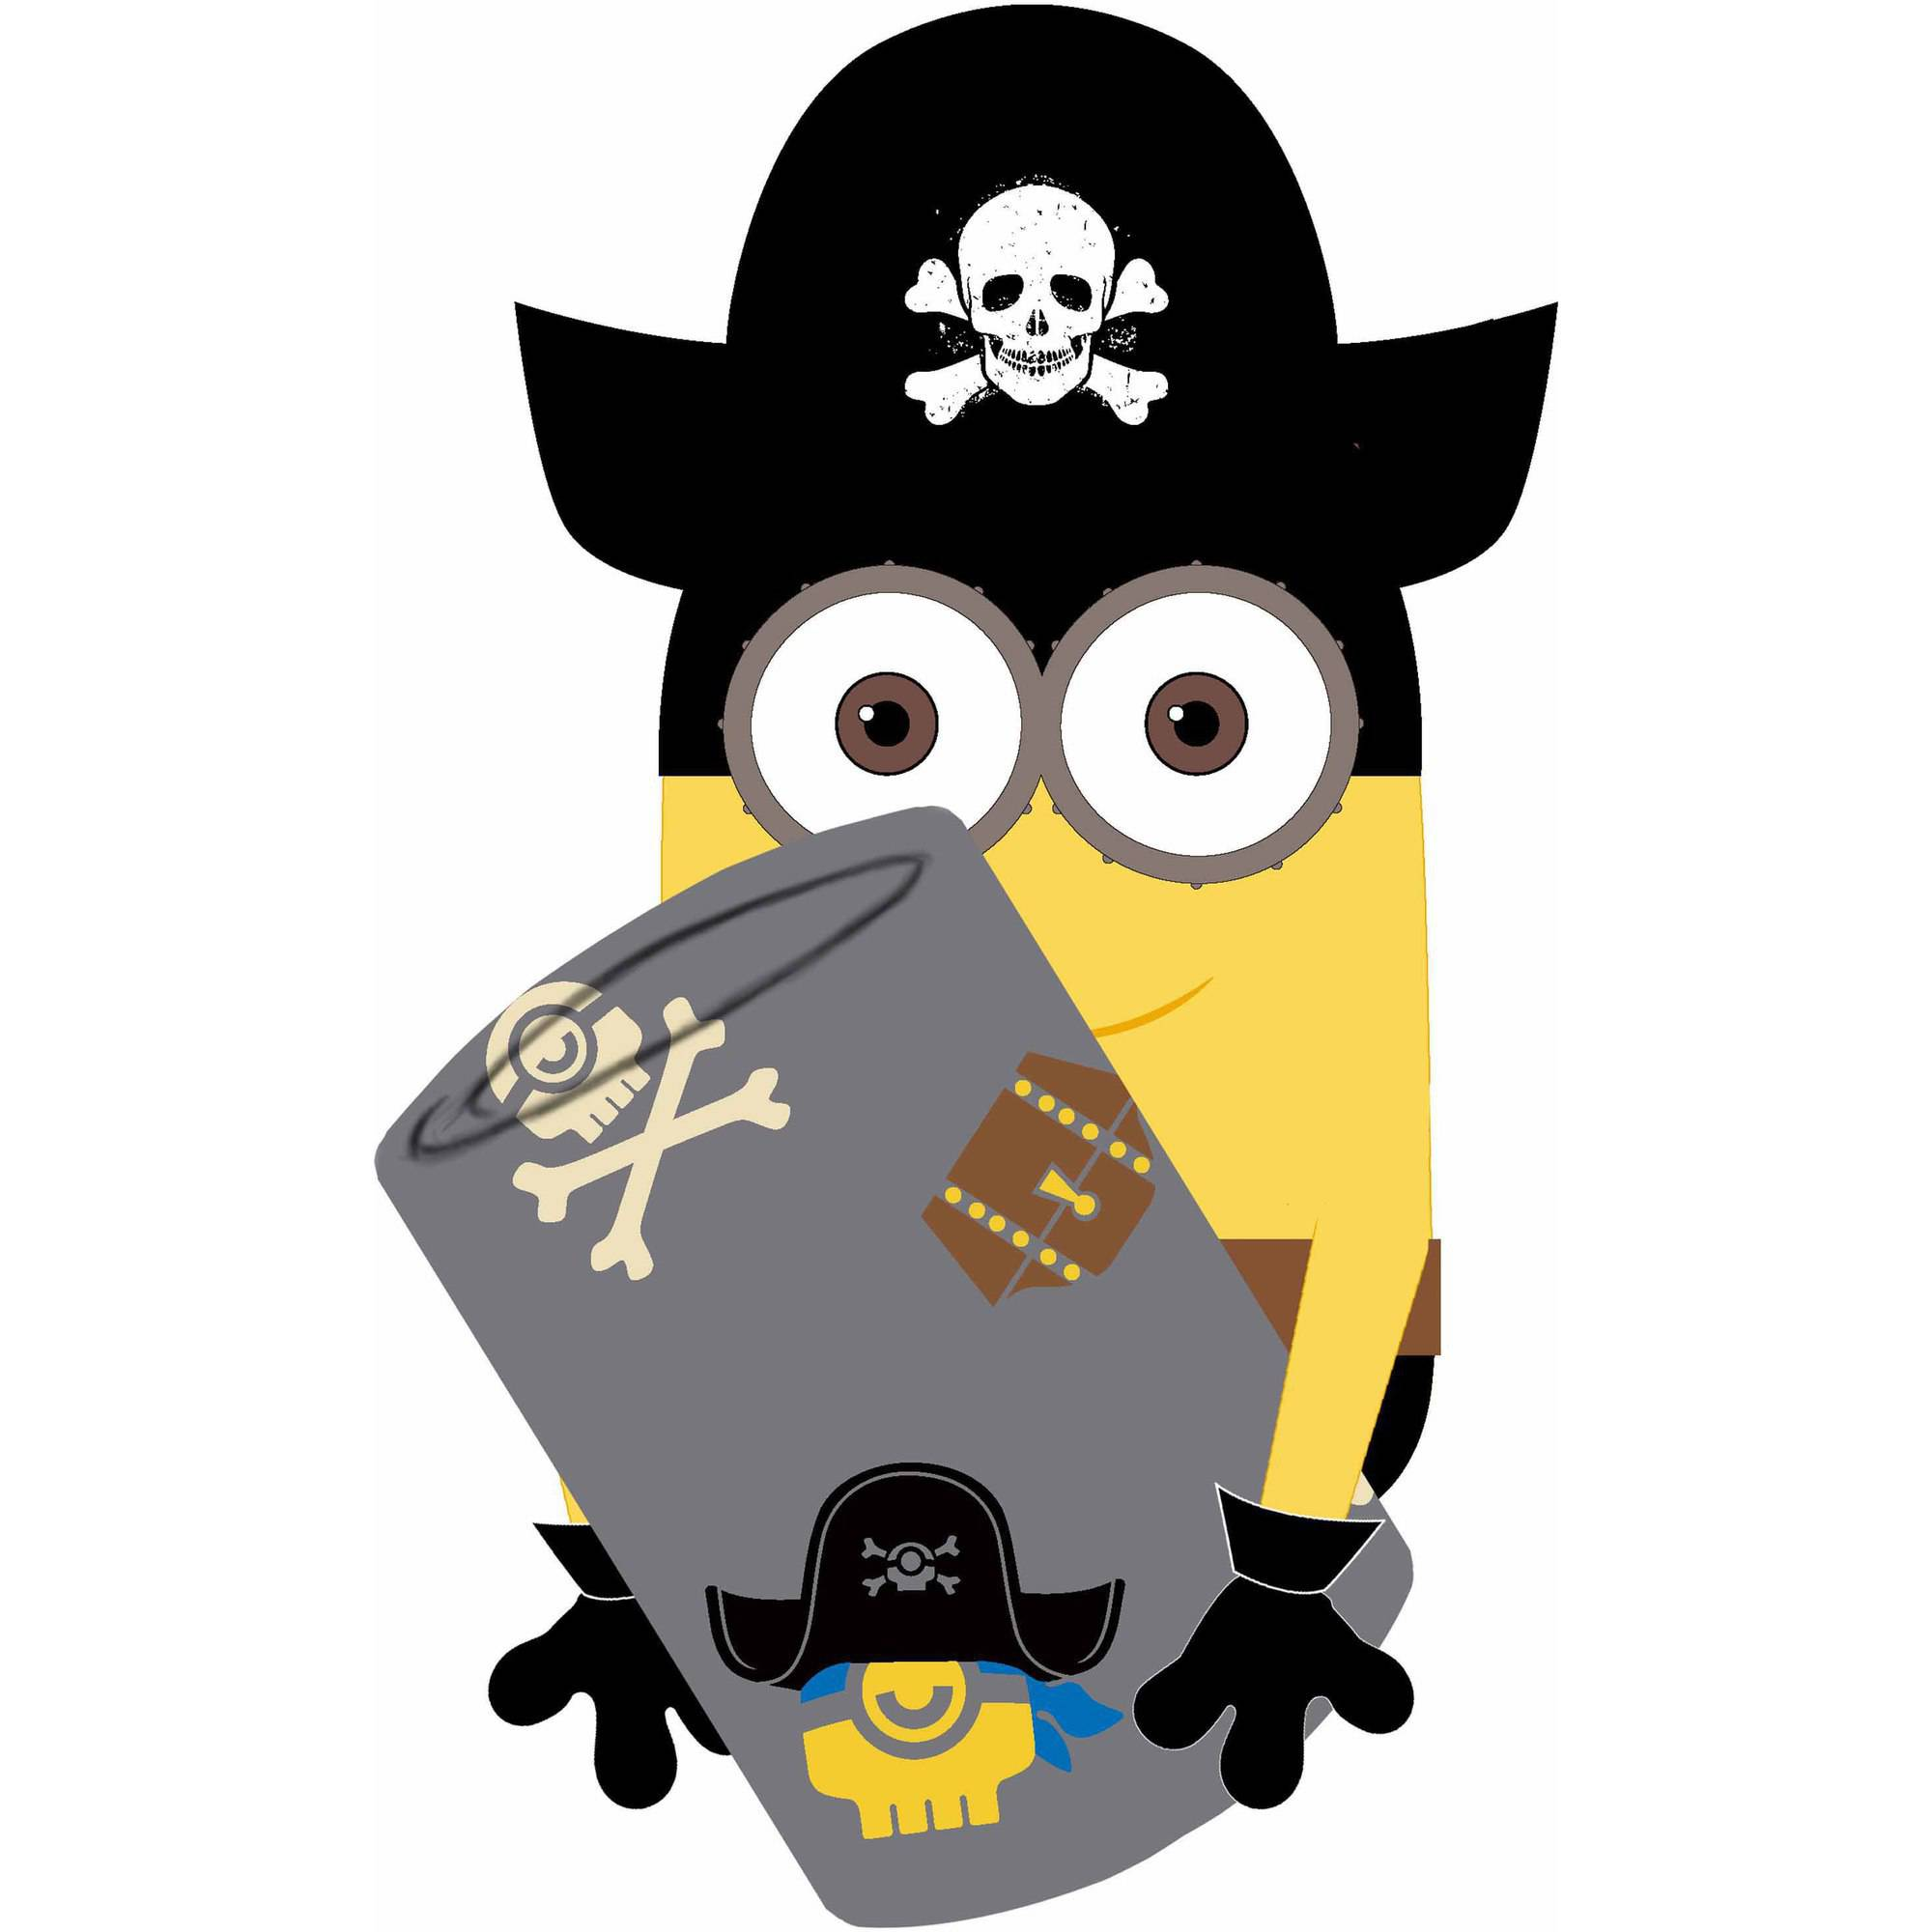 Universal's Despicable Me Minions Pirate Character and Throw Combo